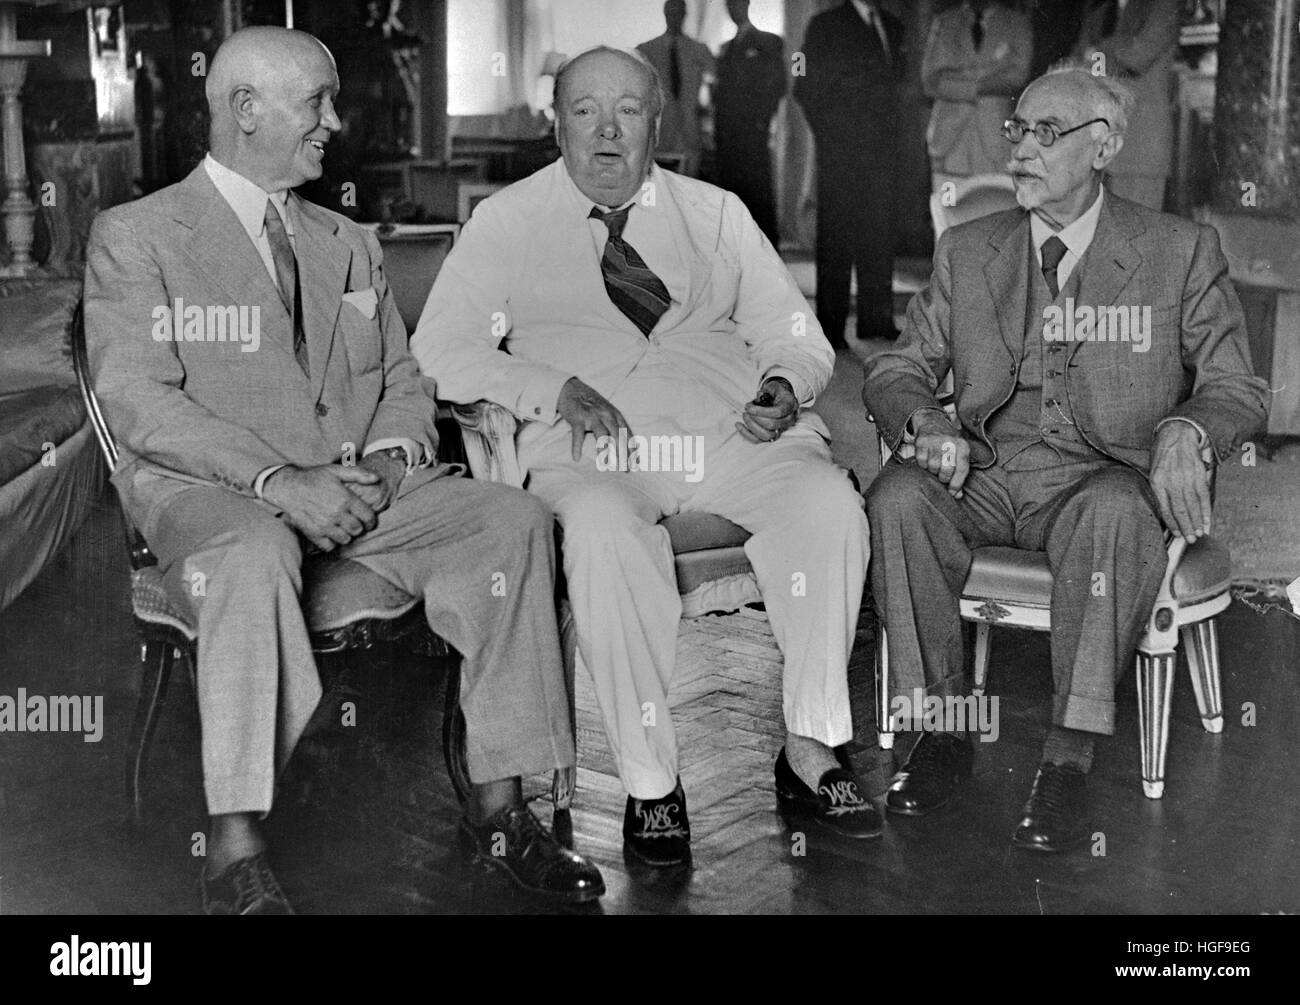 Dwight Eisenhower, Winston Churchill and Jan Smuts at the British Embassy,Cairo - Stock Image